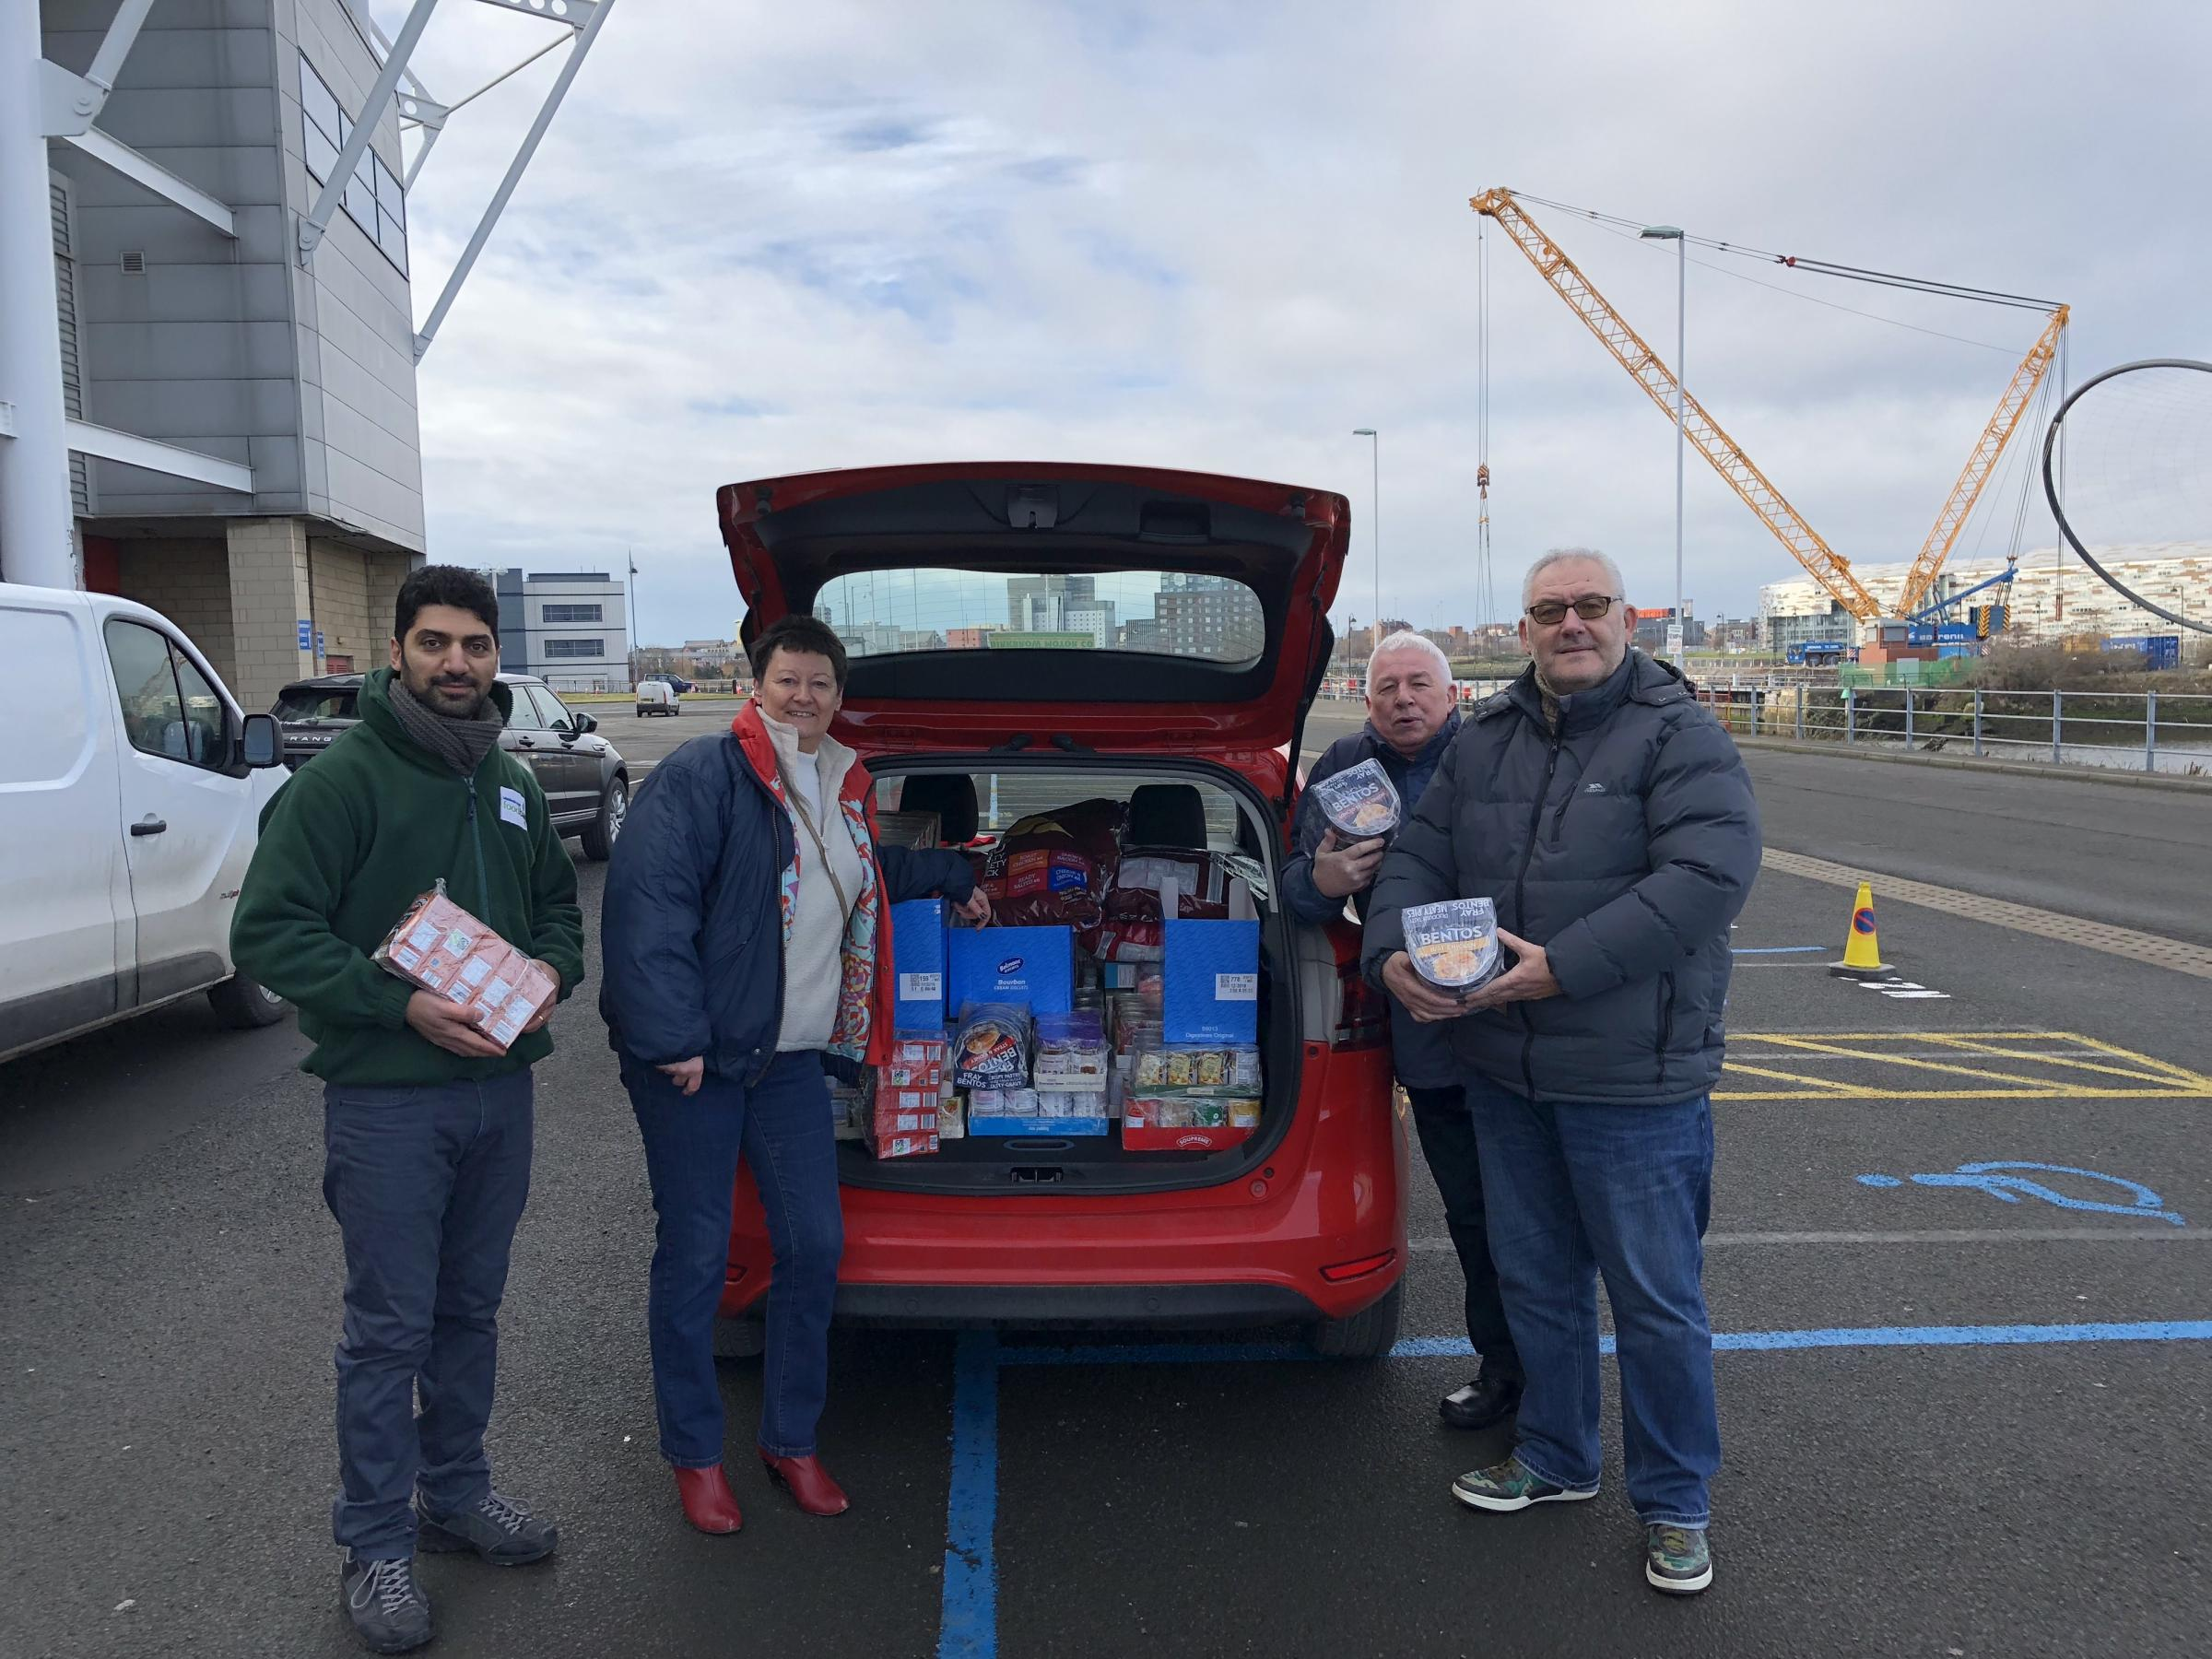 DONATIONS: Soroush Sadeghzadeh, project manager at Middlesbrough Foodbank, Caroline Walker, chairwoman of Middlesbrough Supporters Forum, Peter Hodgson, secretary of MSF, Steve rock, chairman of Middlesbrough Official Supporters club handing over its cont